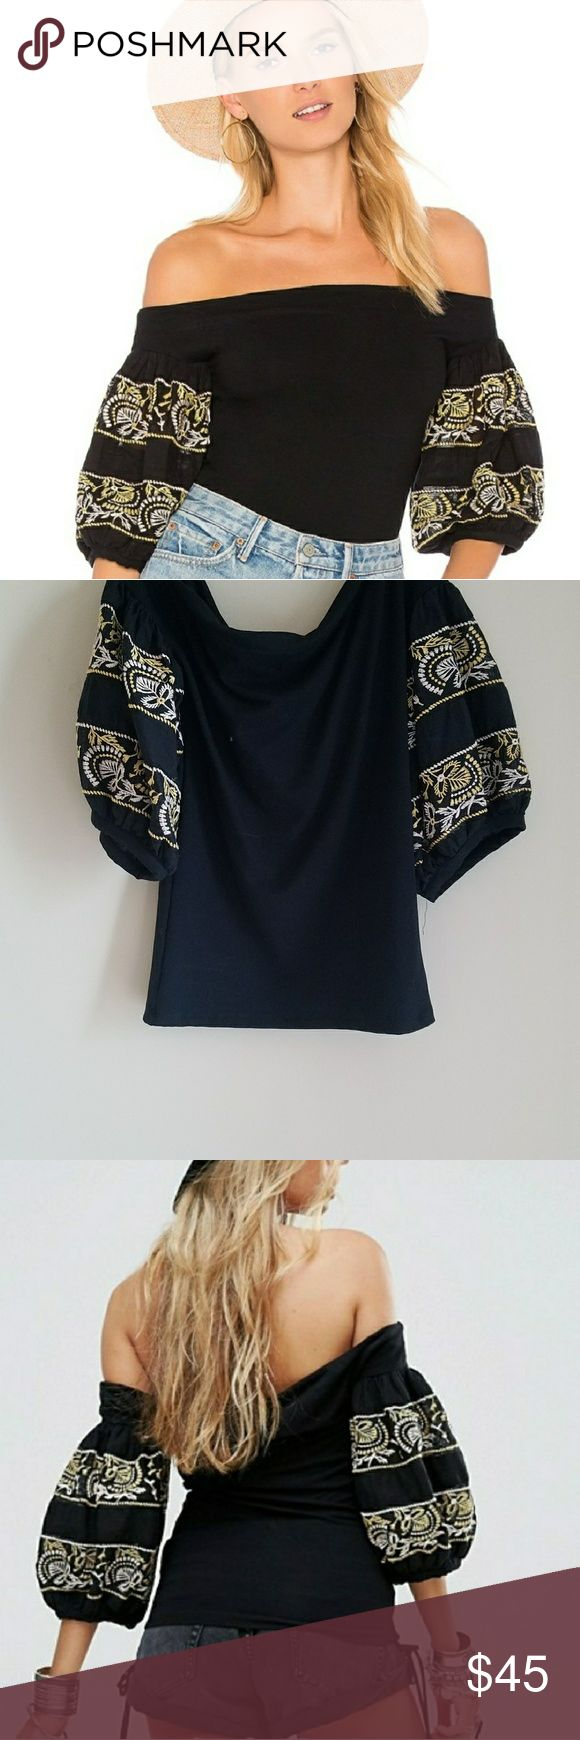 Free People rock with it embroidered top Soft touch stretch fabric Bardot neck Balloon sleeves Regular fit true to size Off the shoulder  Embroidered details Machine wash 87% rayon 13% elastane Free People Tops Blouses